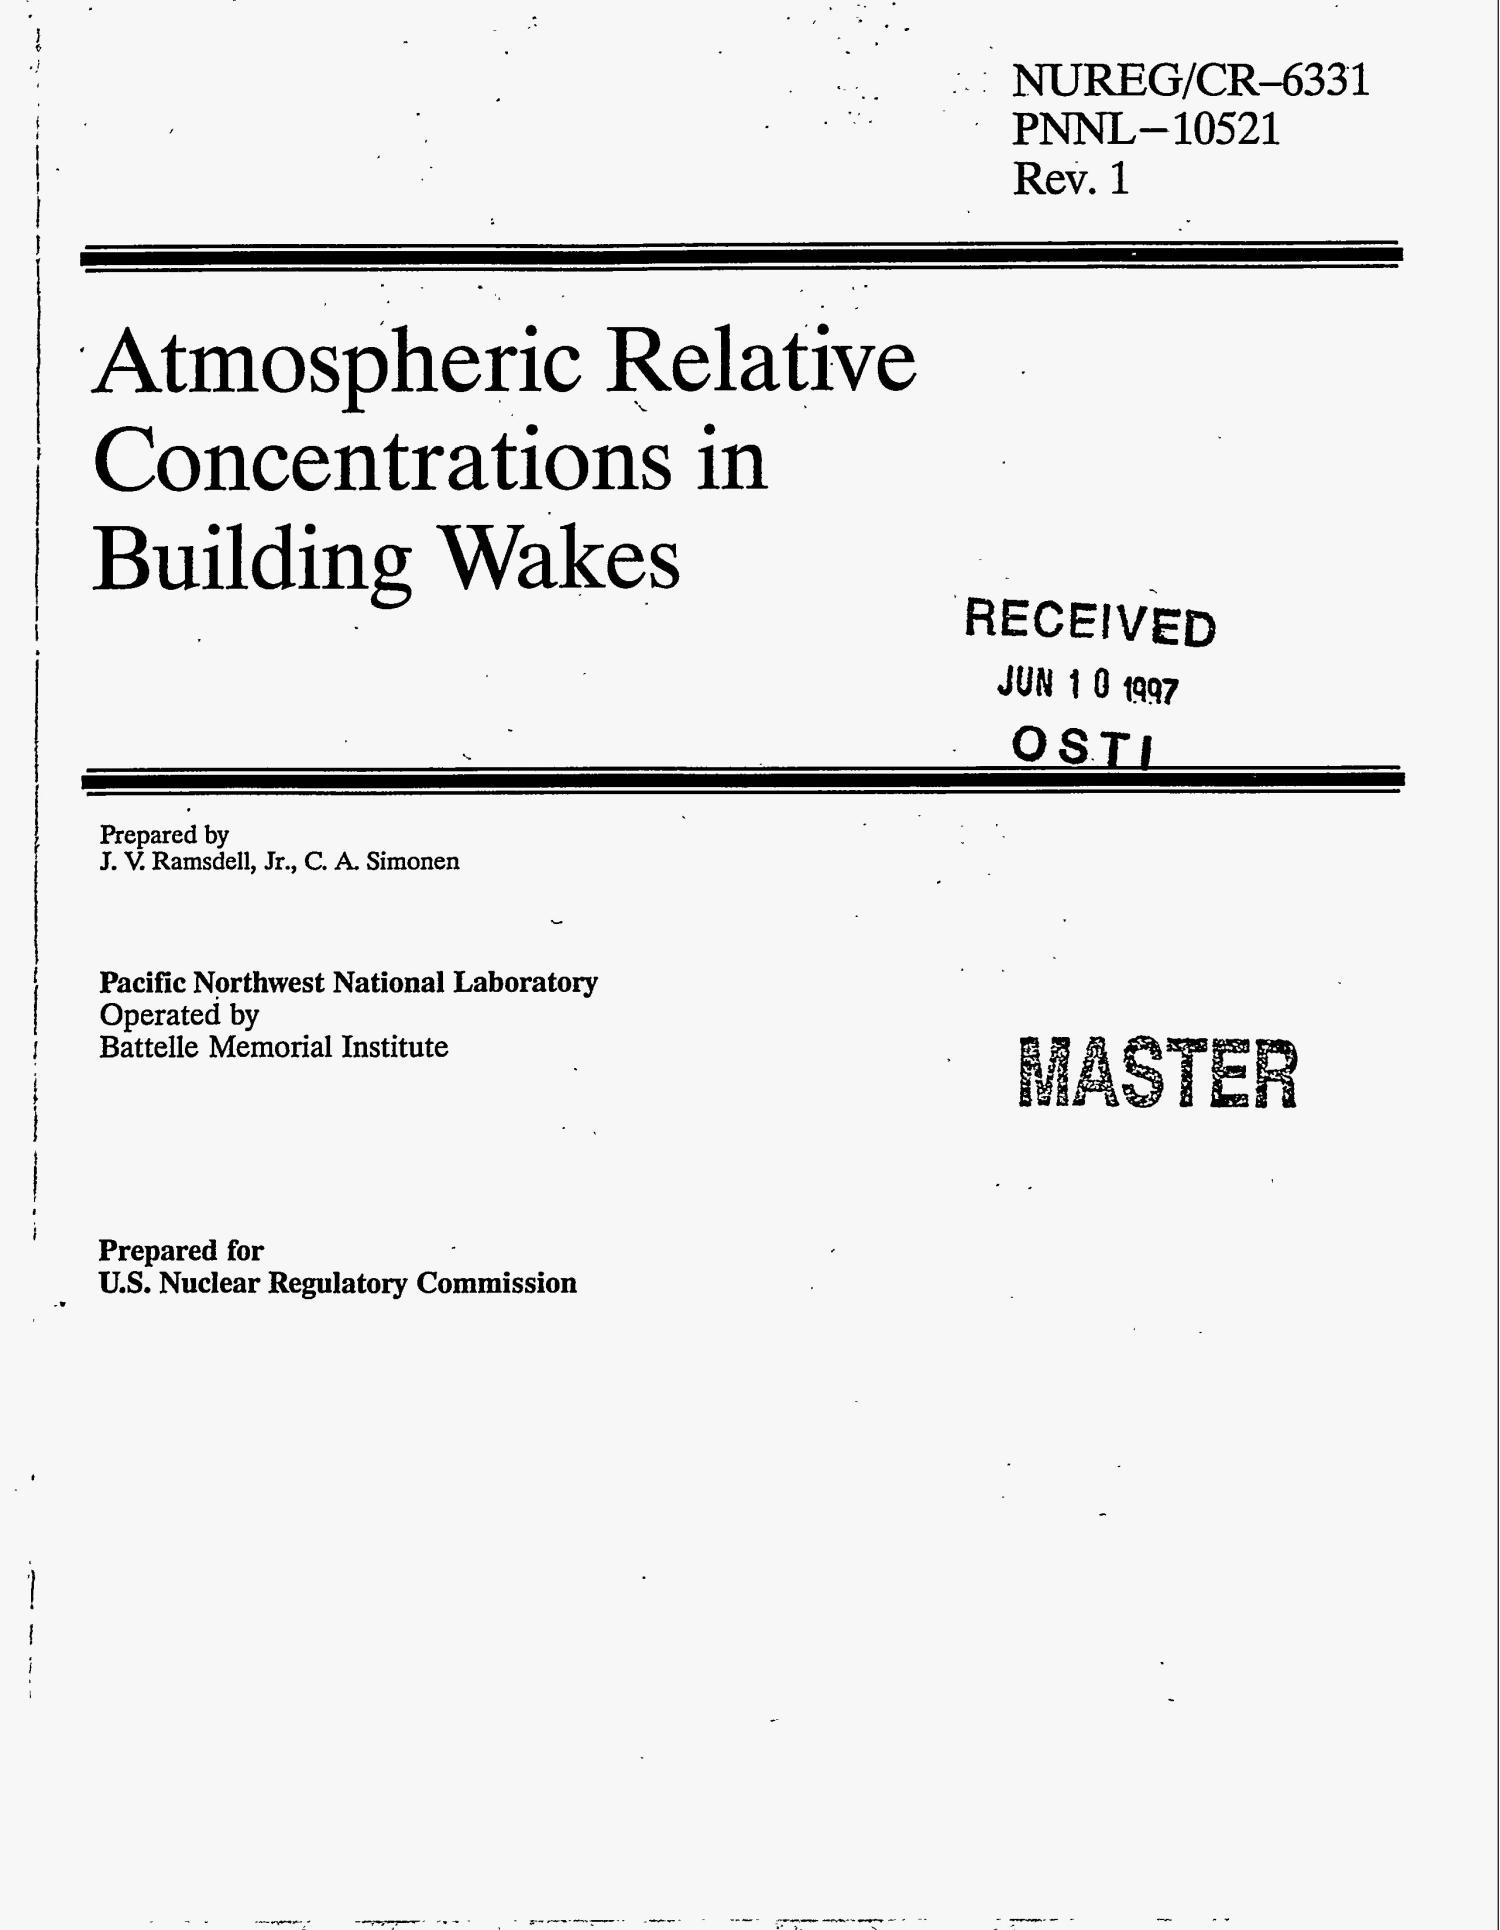 Atmospheric relative concentrations in building wakes                                                                                                      [Sequence #]: 1 of 149